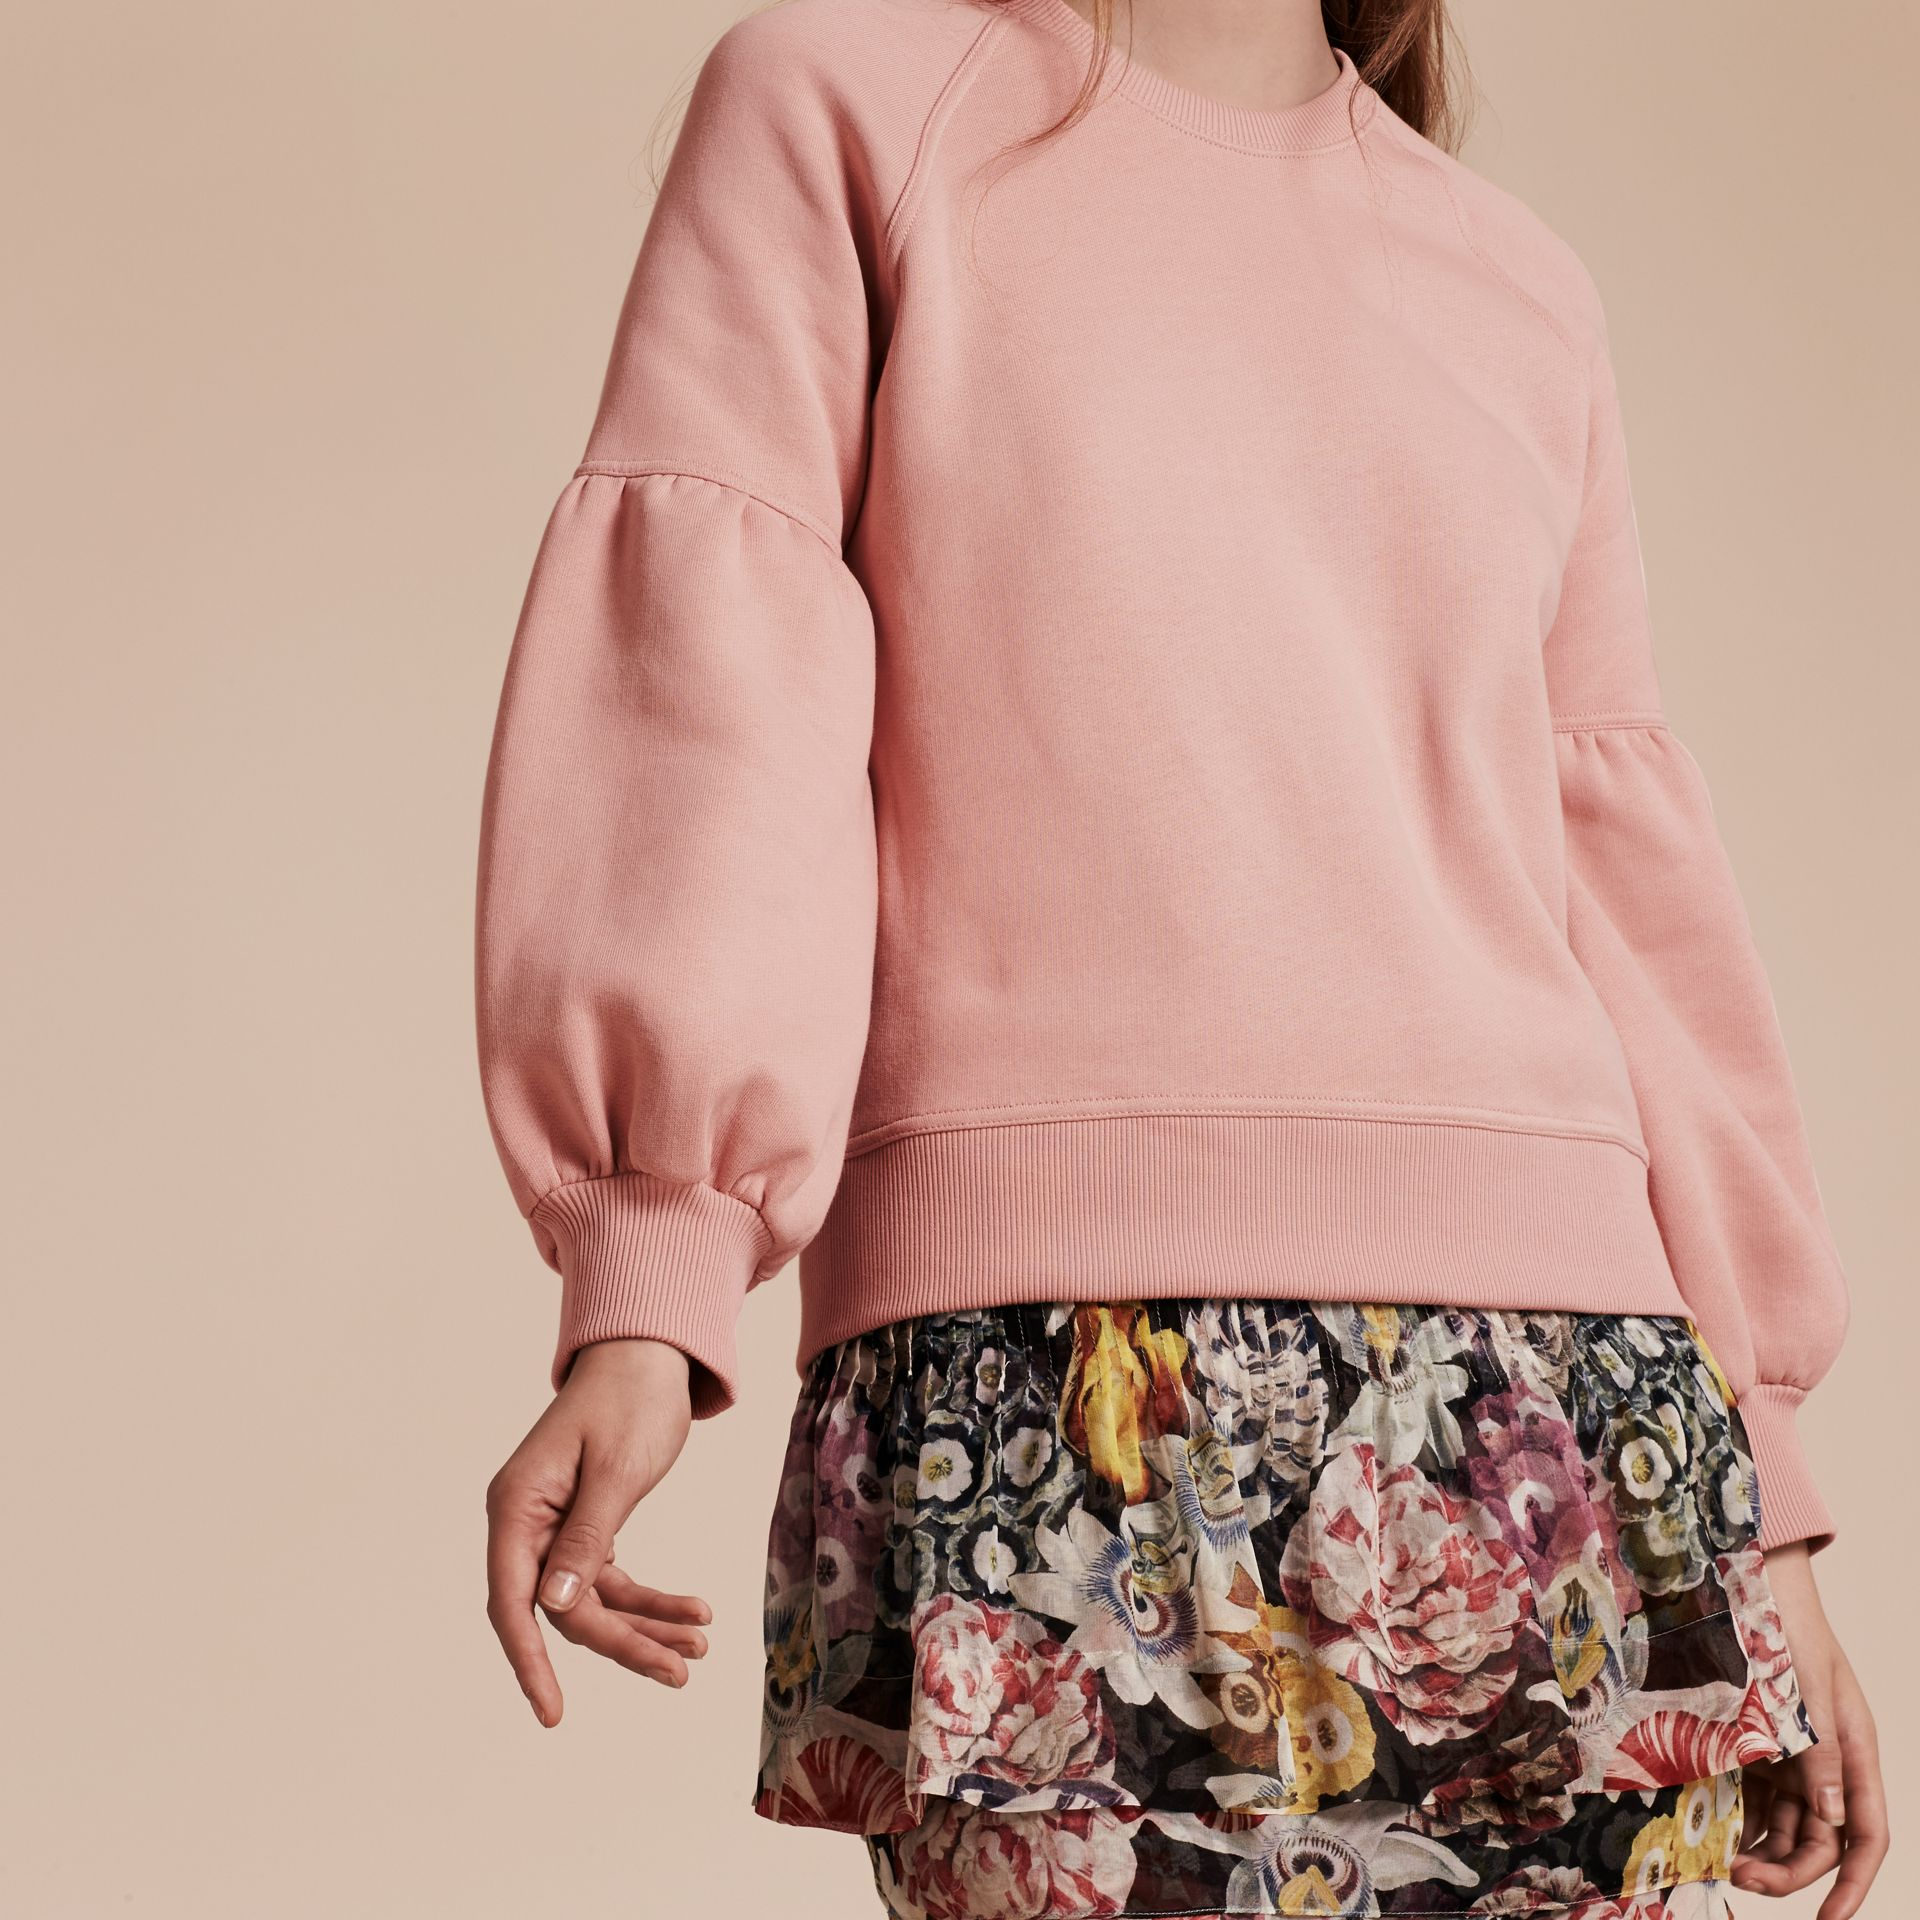 Sweat-shirt en jersey brossé avec manches cloches Rose Cendré - photo de la galerie 5